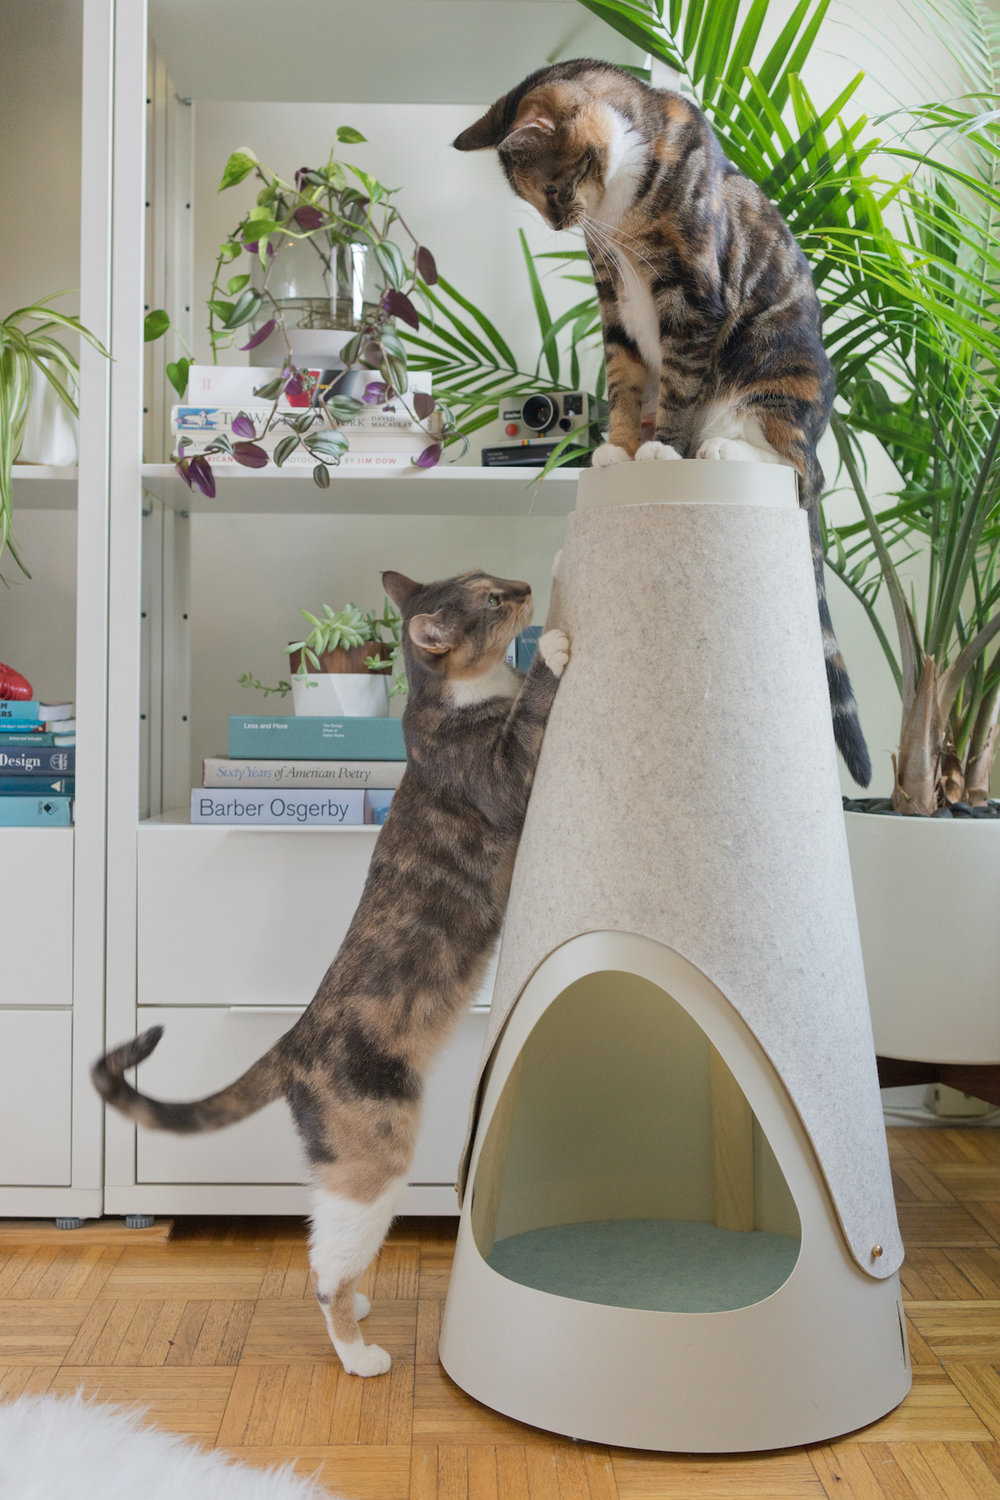 TALL & STURDY  - In nature, cats scratch trees because they're tall, and don't tip or wobble. At home, the next best thing is your favorite armchair. We made The Cone to give cats a better option. At 30 inches tall, cats can fully stretch out when they scratch. With a weighted base, it's super stable.